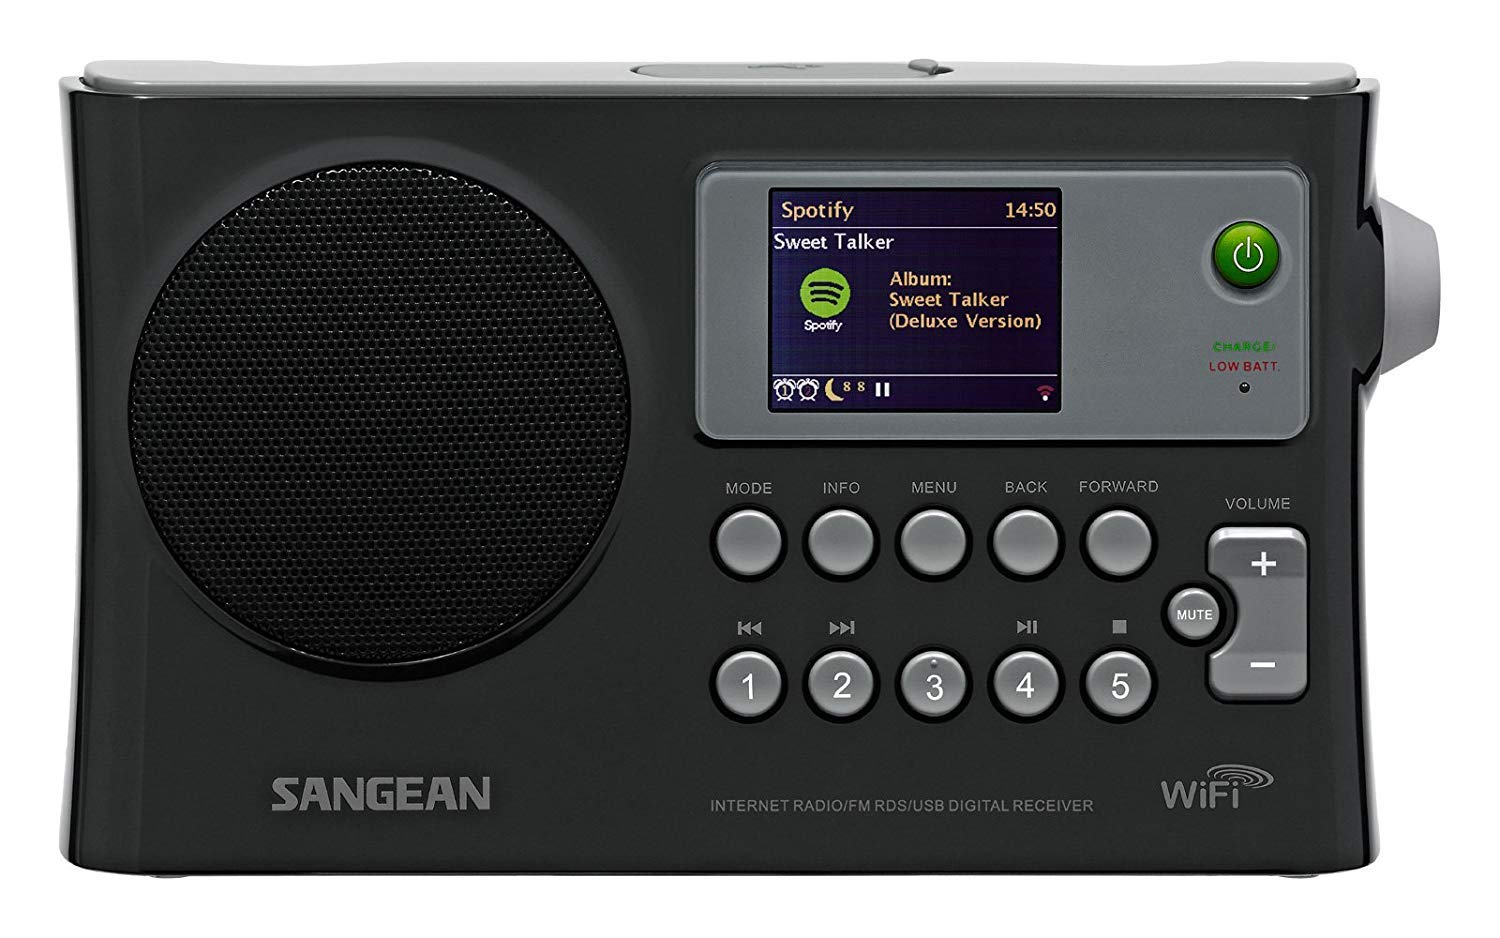 Sangean All in One Compact Portable Digital WiFi Internet Radio with Built-in Speaker, Earphone Jack, Dual Alarm Clock, Plus 6ft Aux Cable to Connect Any Ipod, Iphone or Mp3 Digital Audio Player